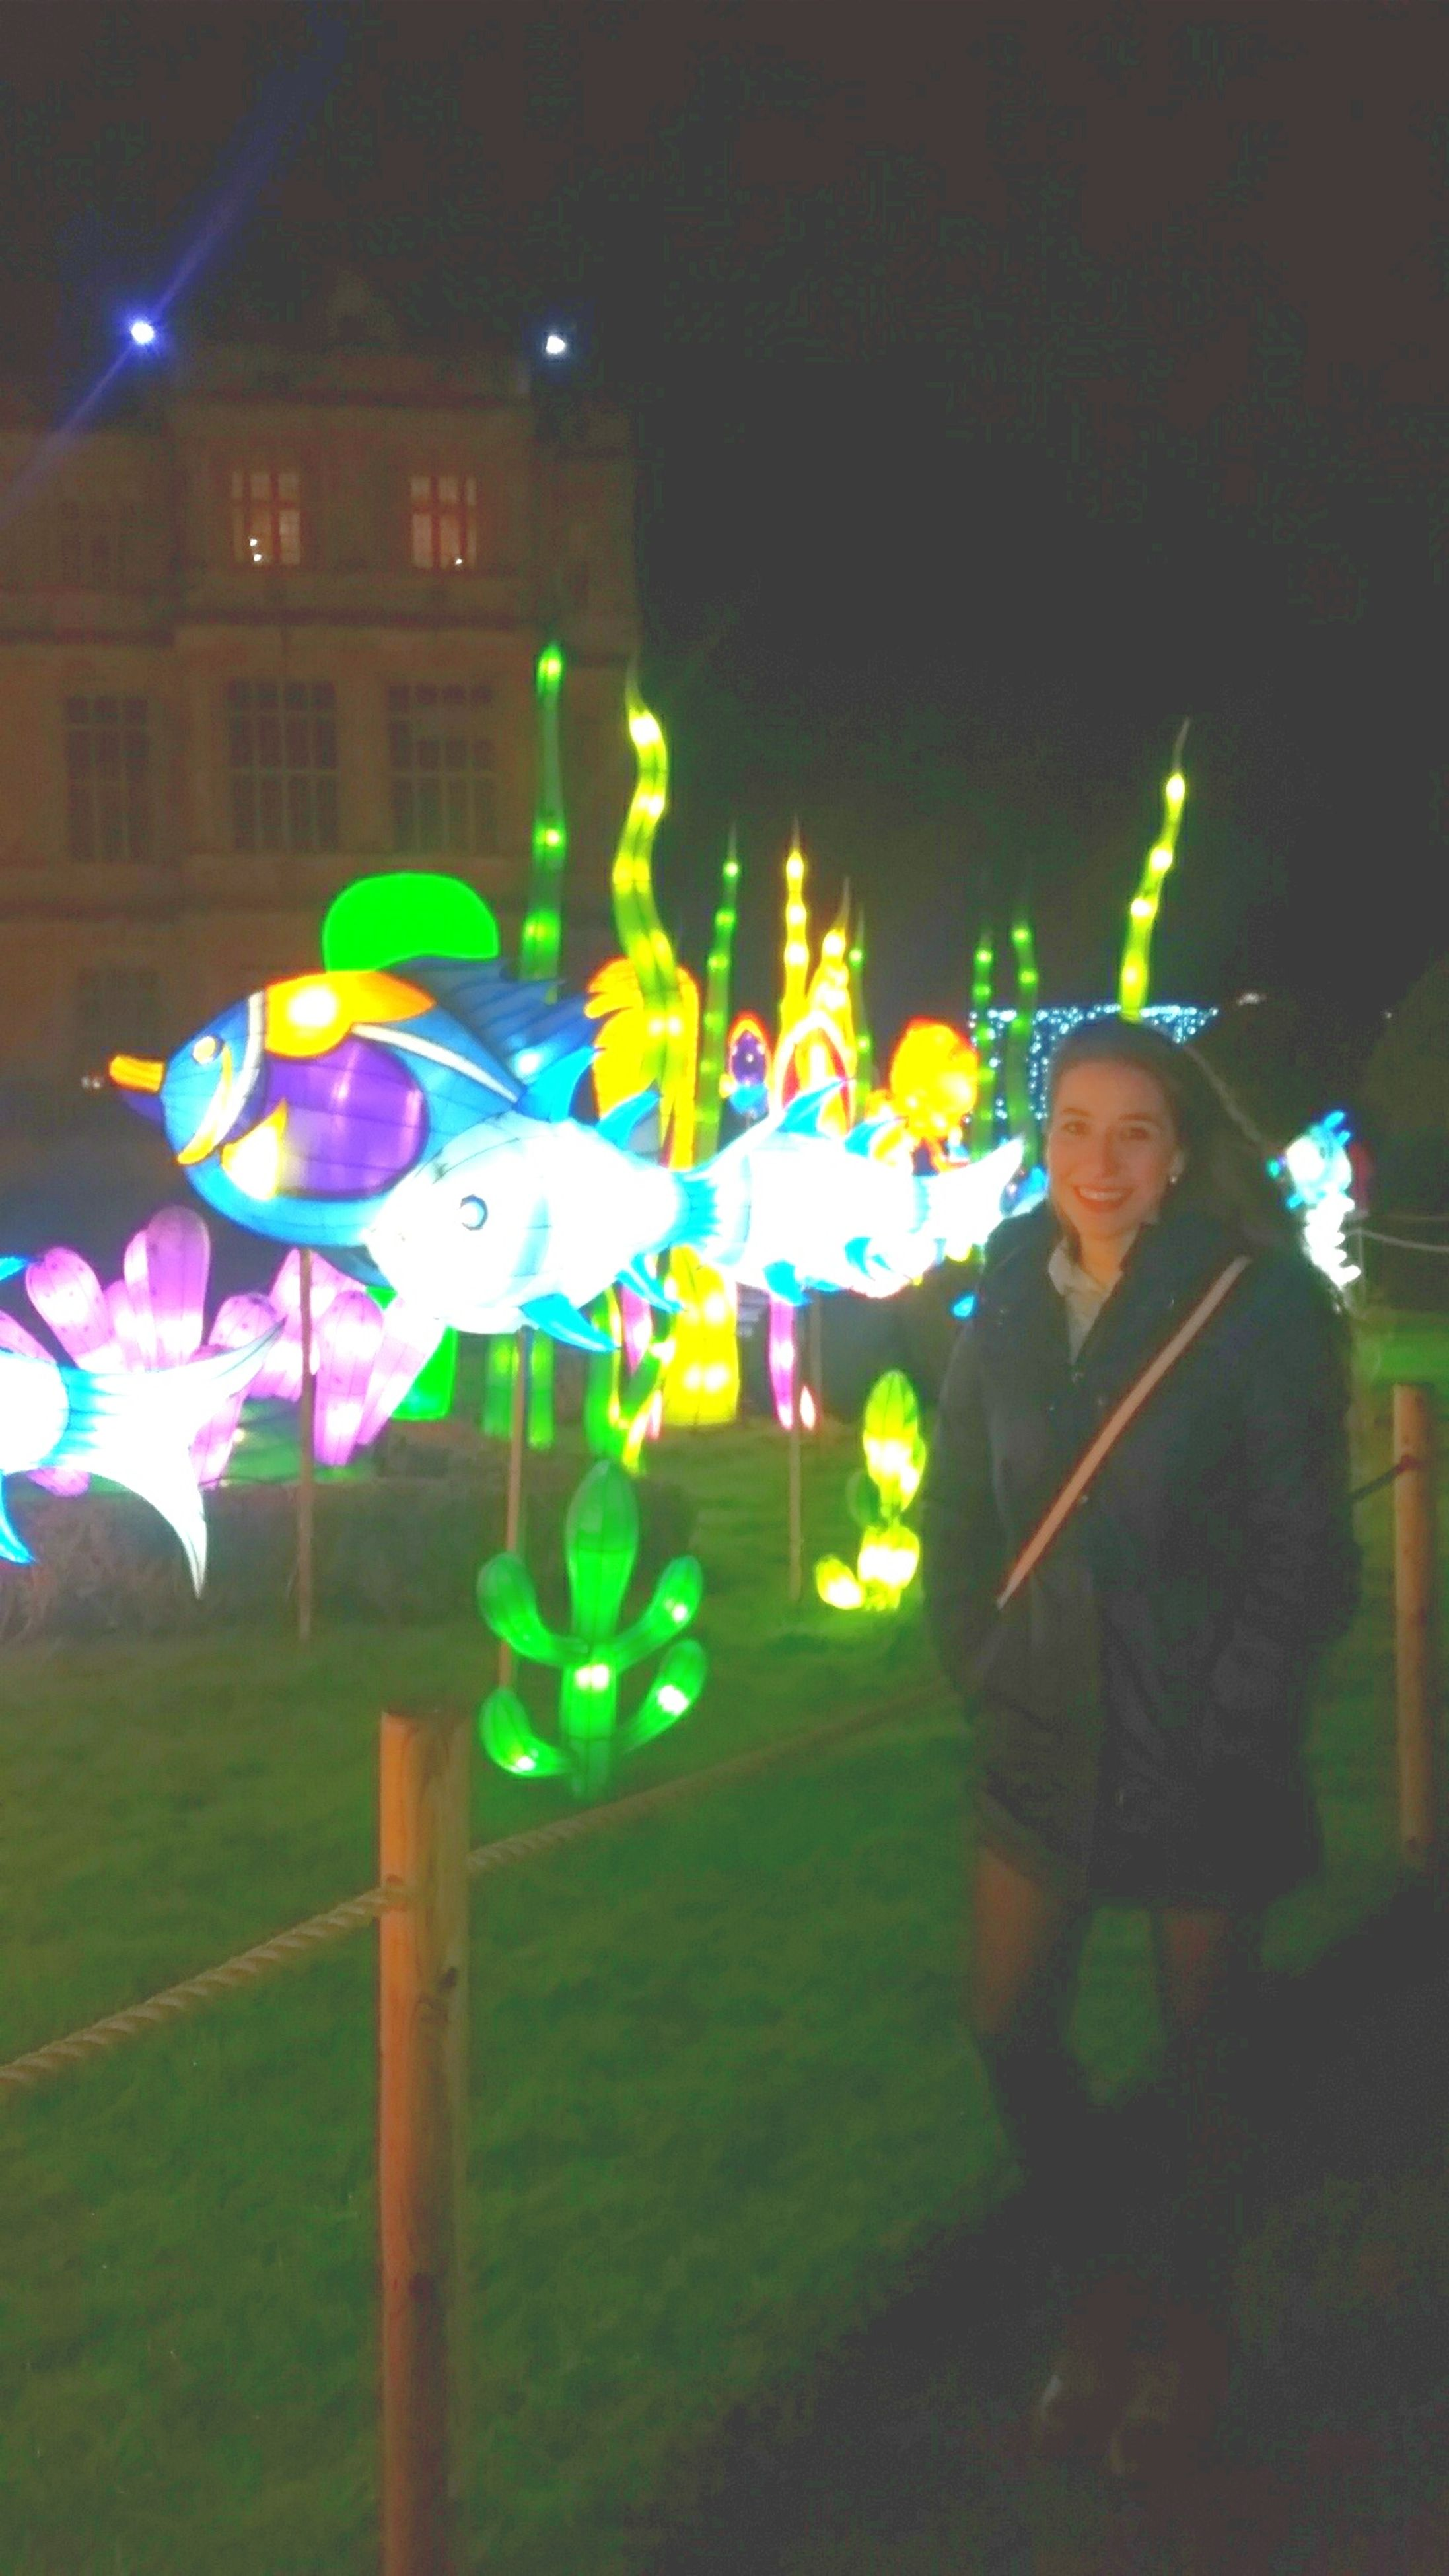 illuminated, night, multi colored, lighting equipment, street light, blue, light - natural phenomenon, sport, outdoors, grass, colorful, green color, celebration, in a row, leisure activity, decoration, arts culture and entertainment, no people, street, incidental people